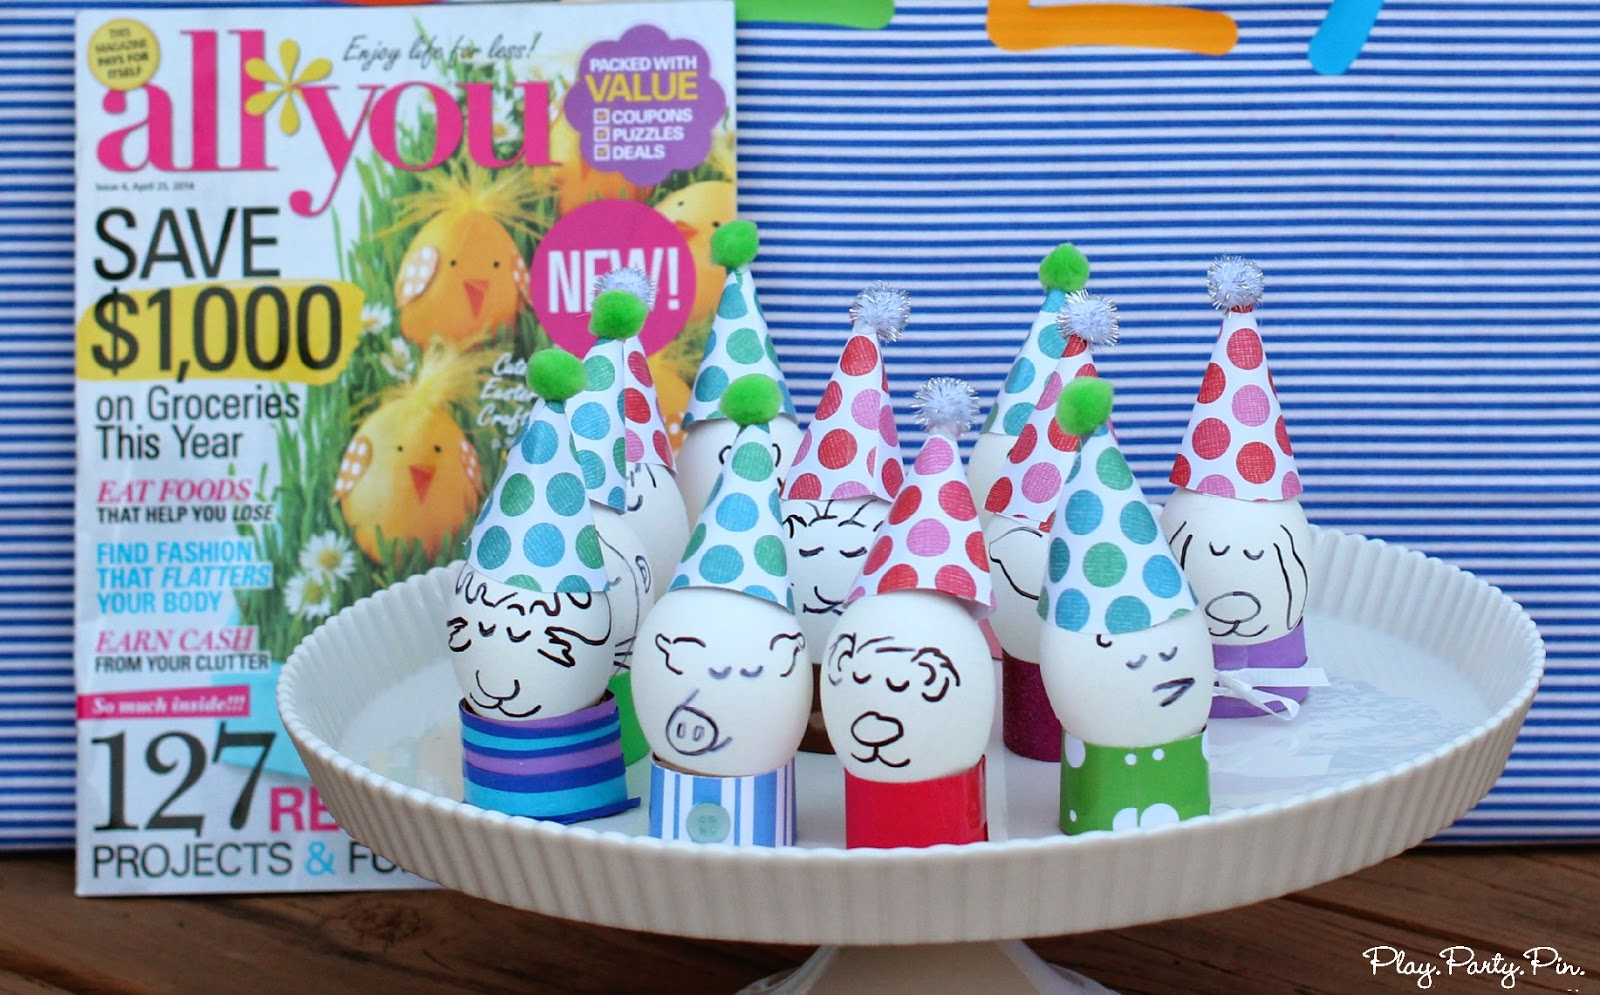 These decorated party eggs would be perfect for a brunch, breakfast, or pajama party #partyideas #eggs #decorations